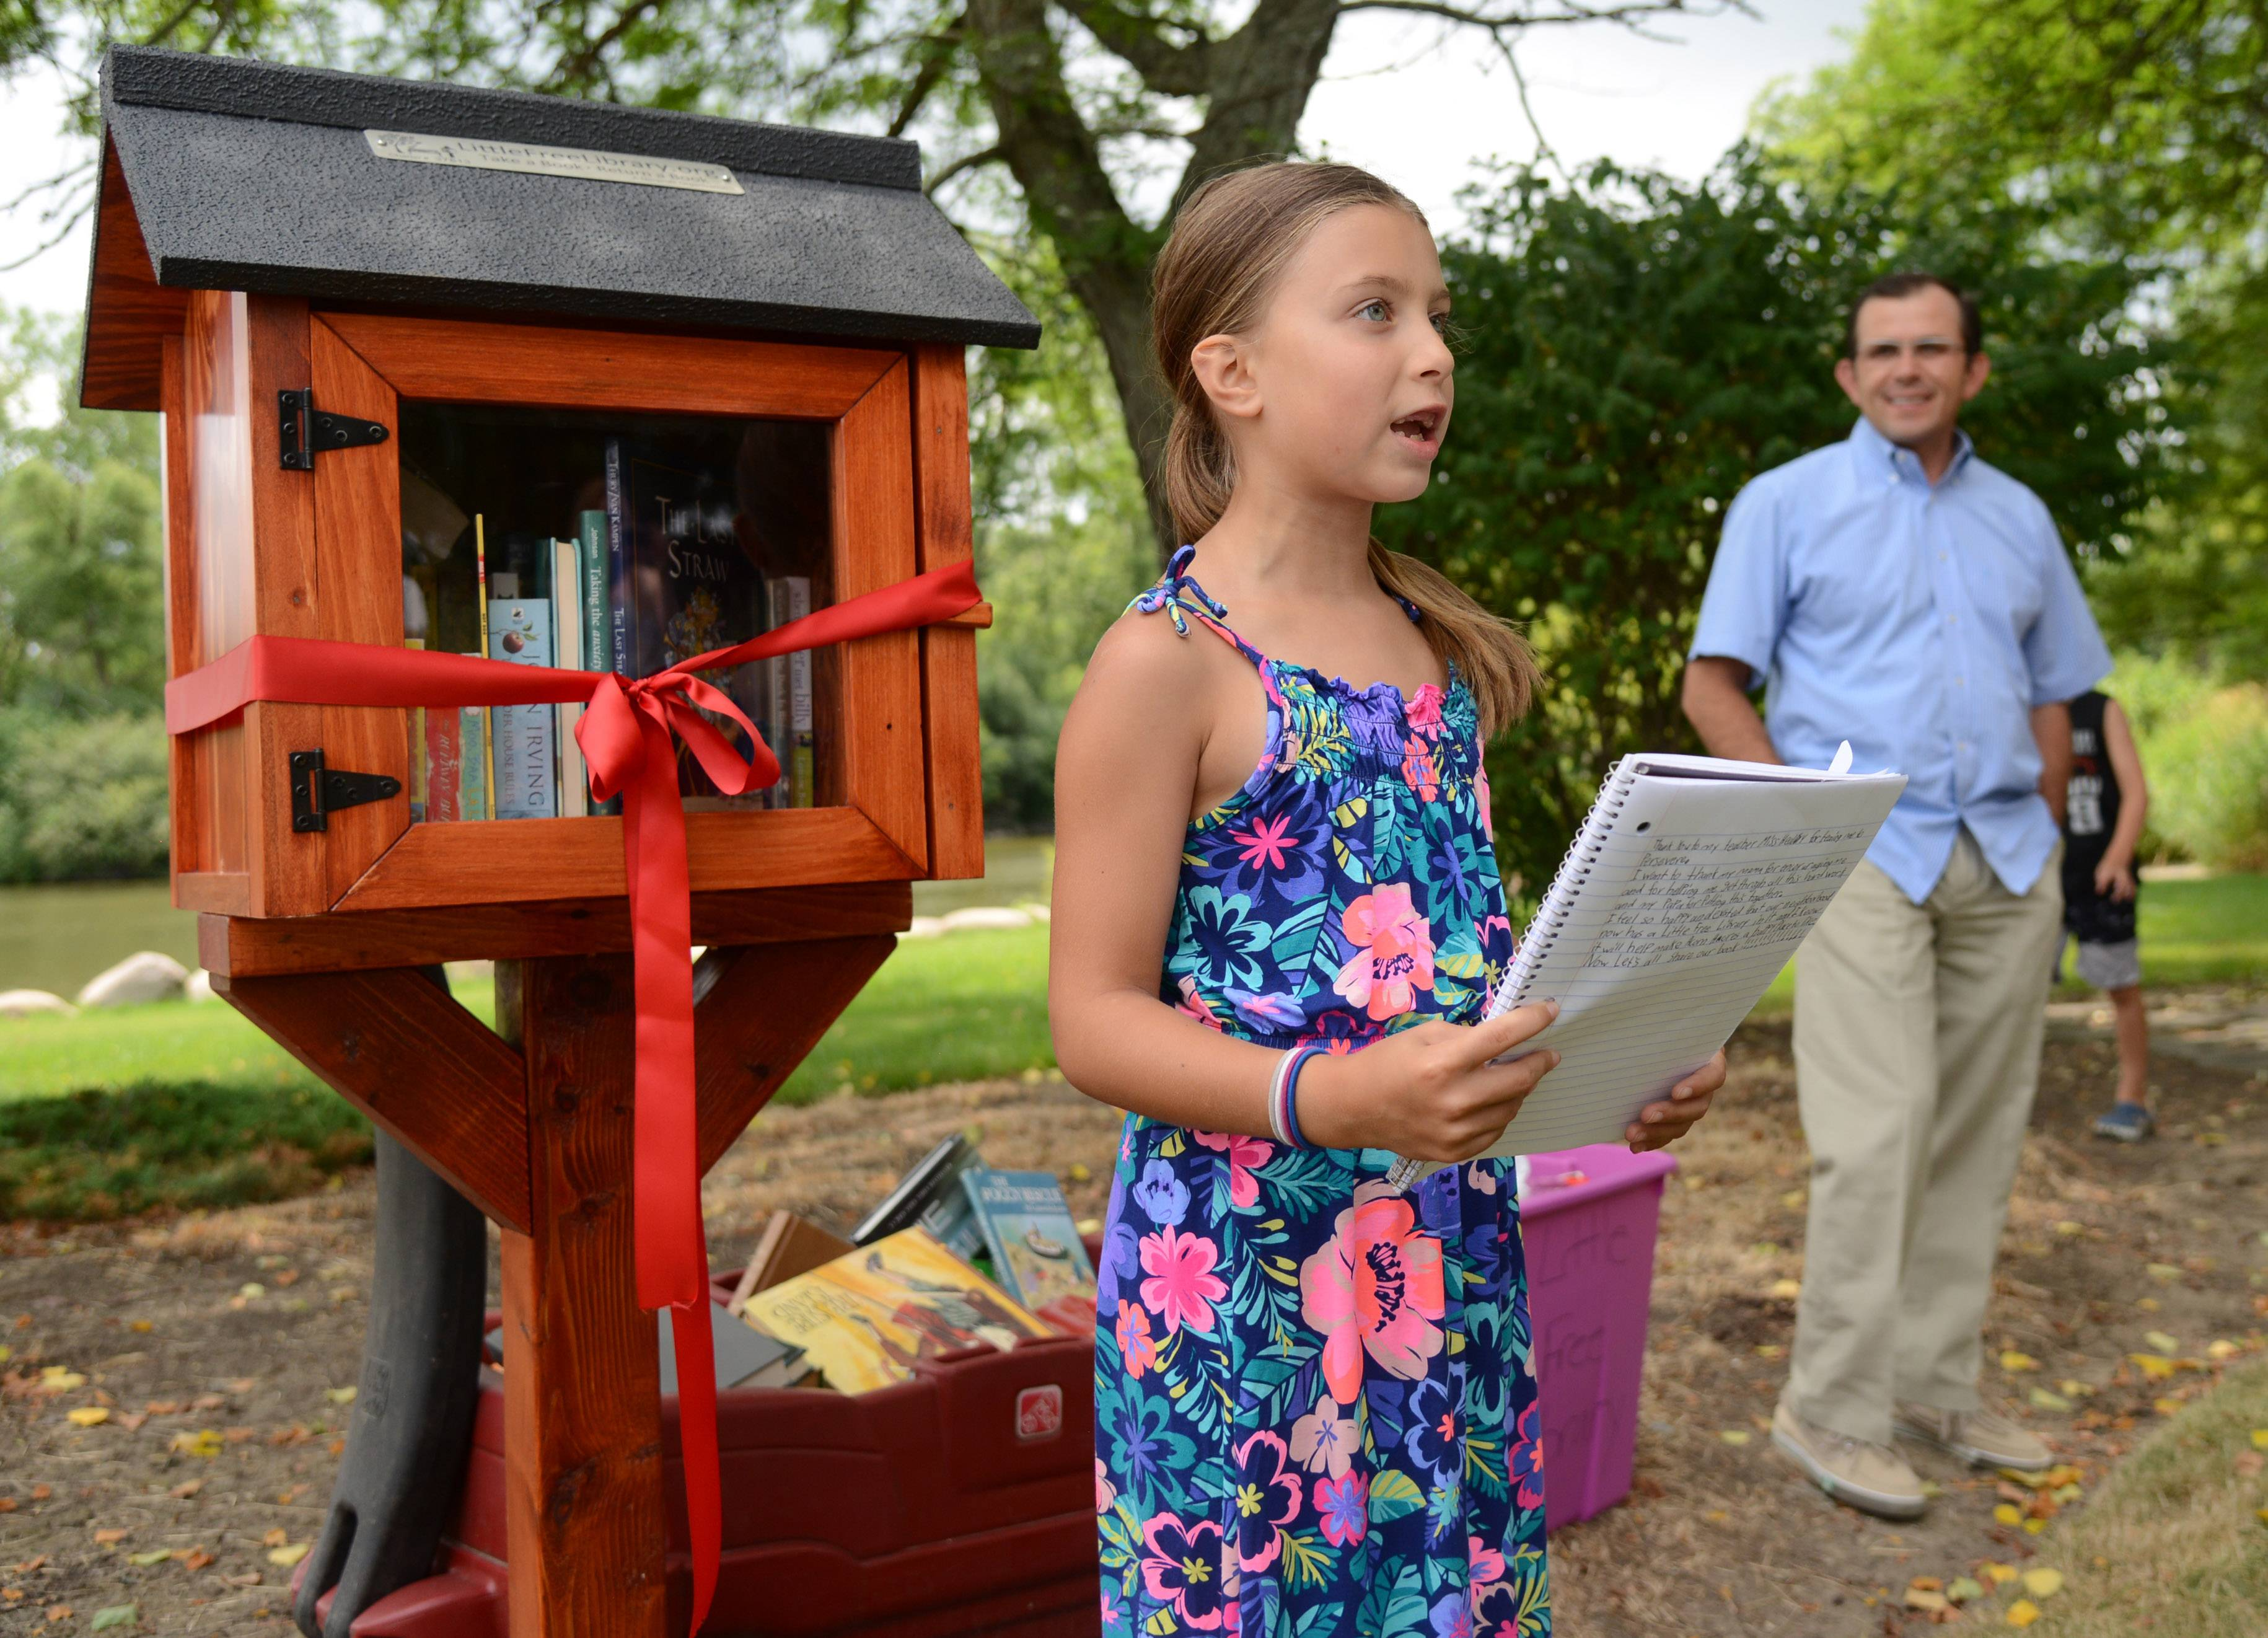 A Little Free Library opened Thursday in Hawthorn Woods thanks to the efforts of 7-year-old Maya Schultes. Maya talked about the project Thursday during an opening ceremony attended by Mayor Joseph Mancino, right, and other village leaders.